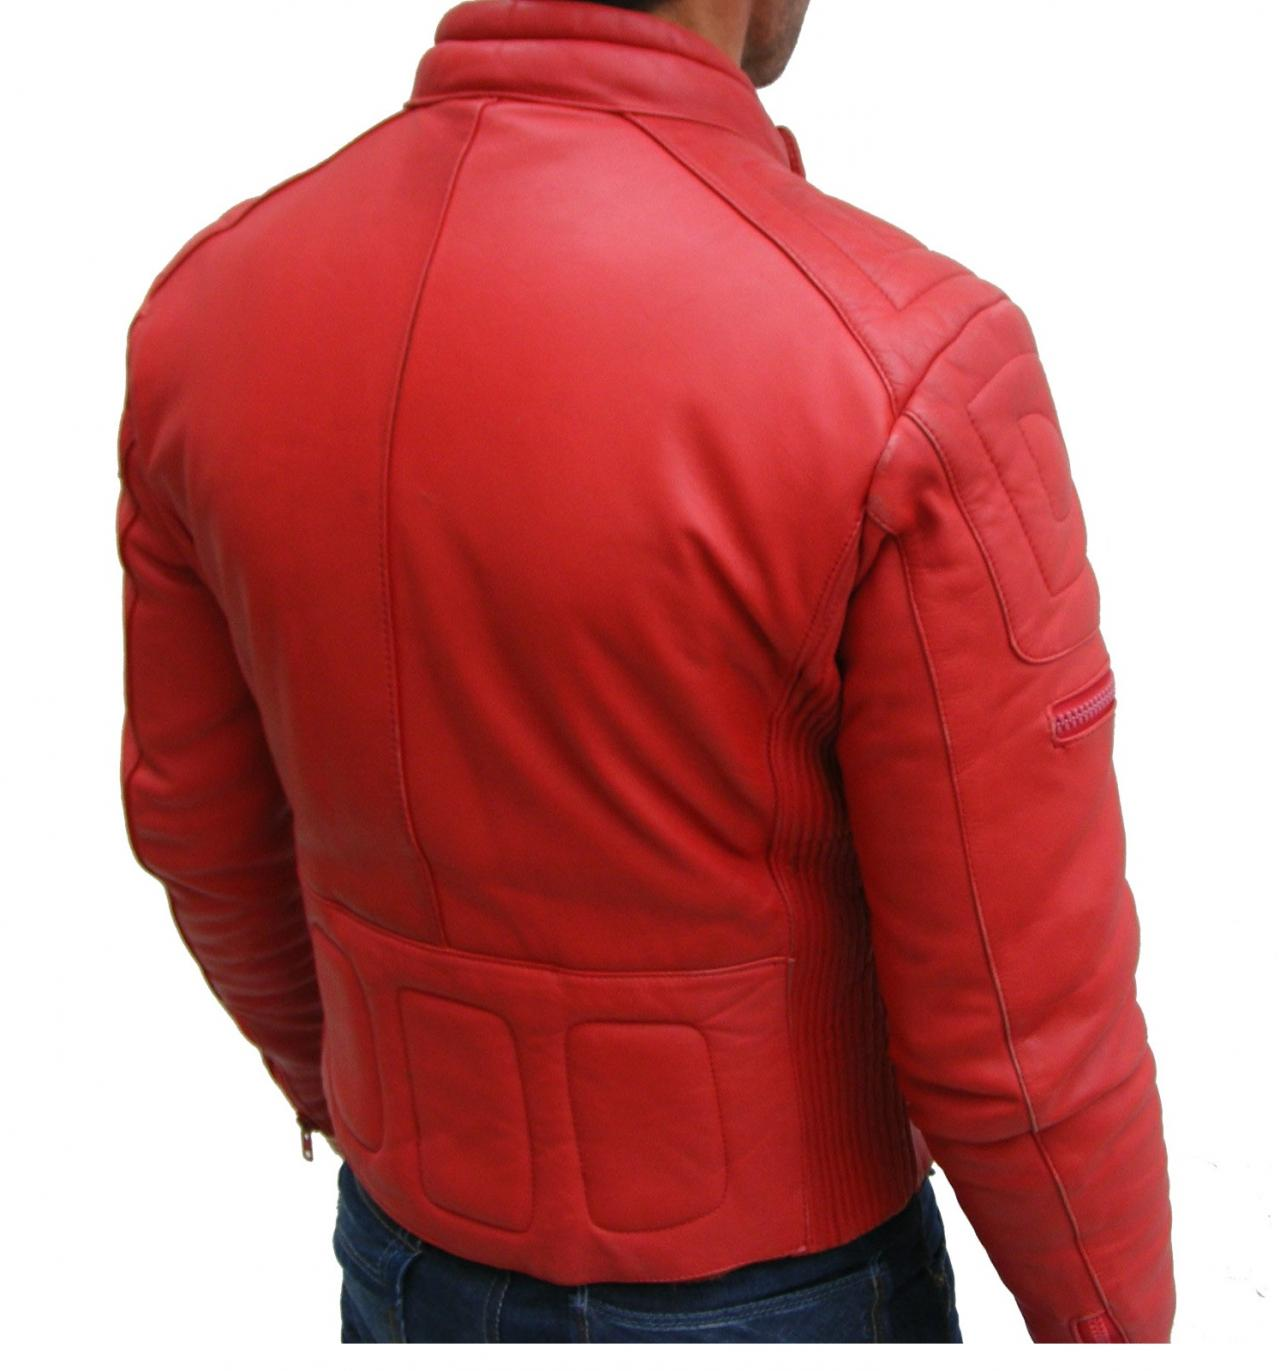 MENS BOMBER LEATHER JACKET, RED COLOR JACKET MEN, LEATHER ...